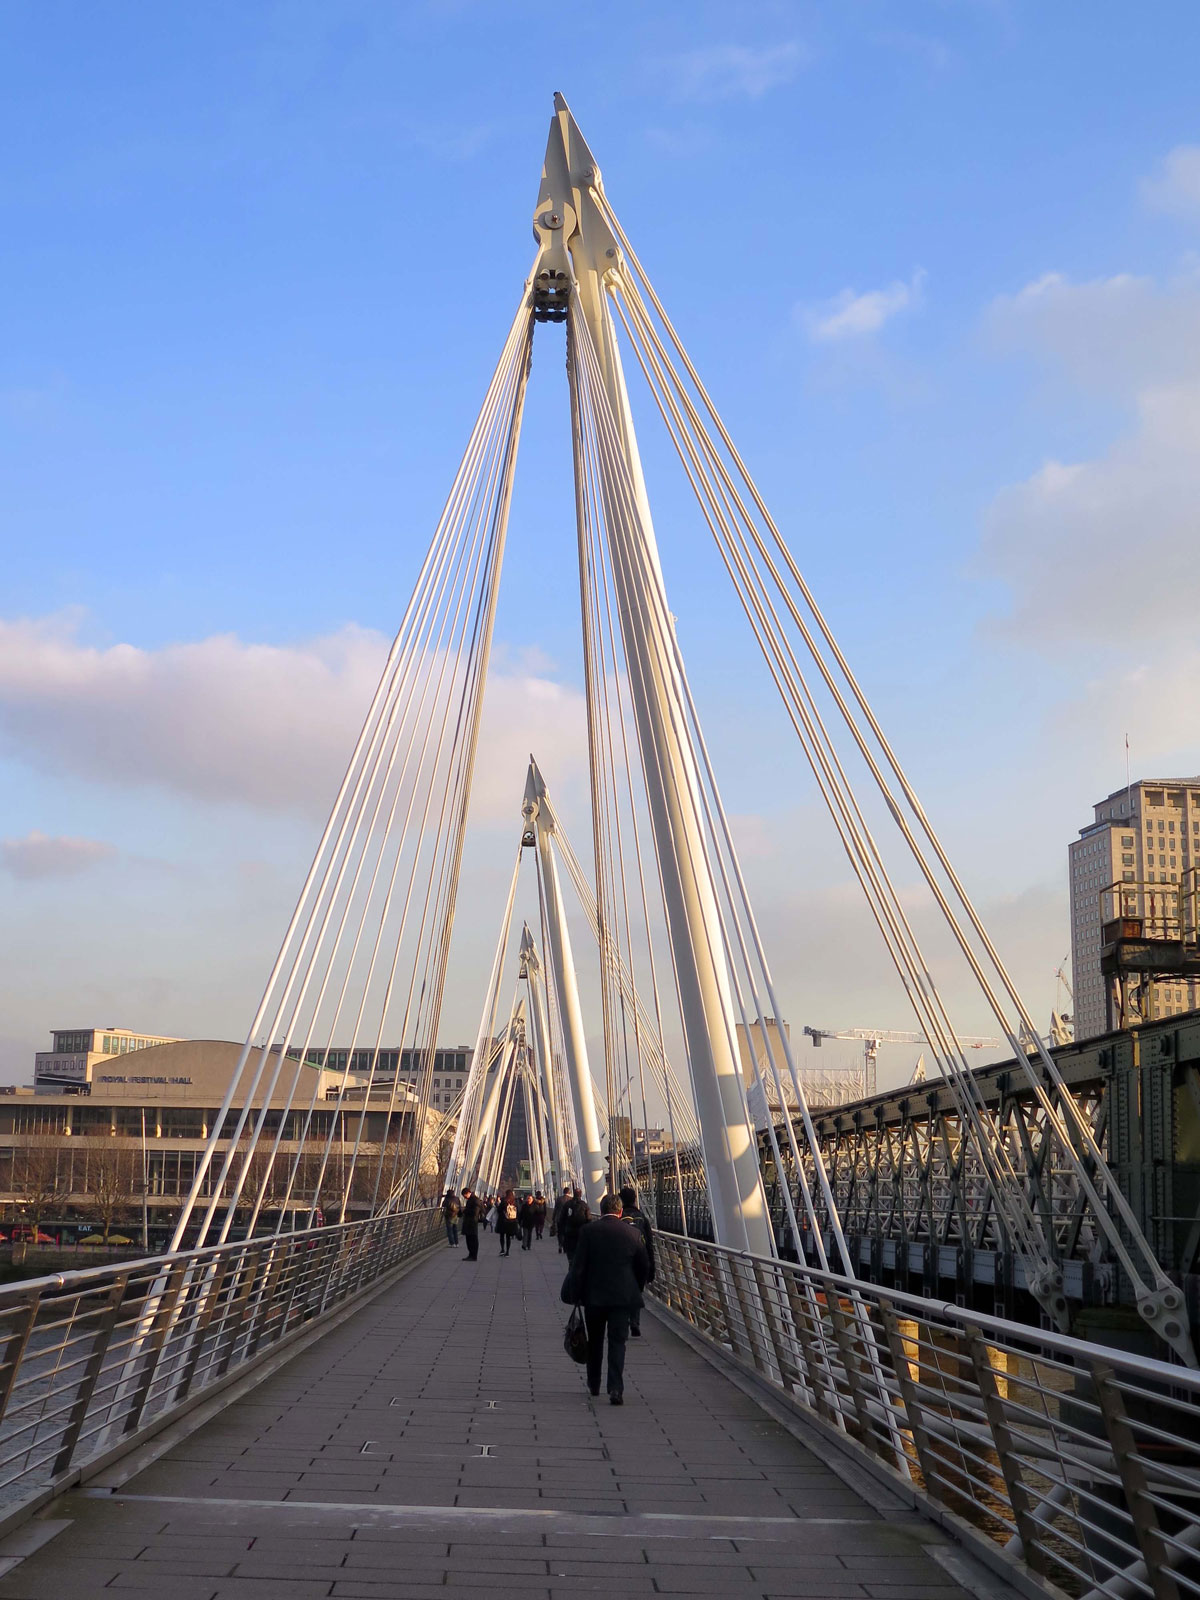 02-Walking-across-to-the-South-Bank-on-the-Dowmstream-Footbridge